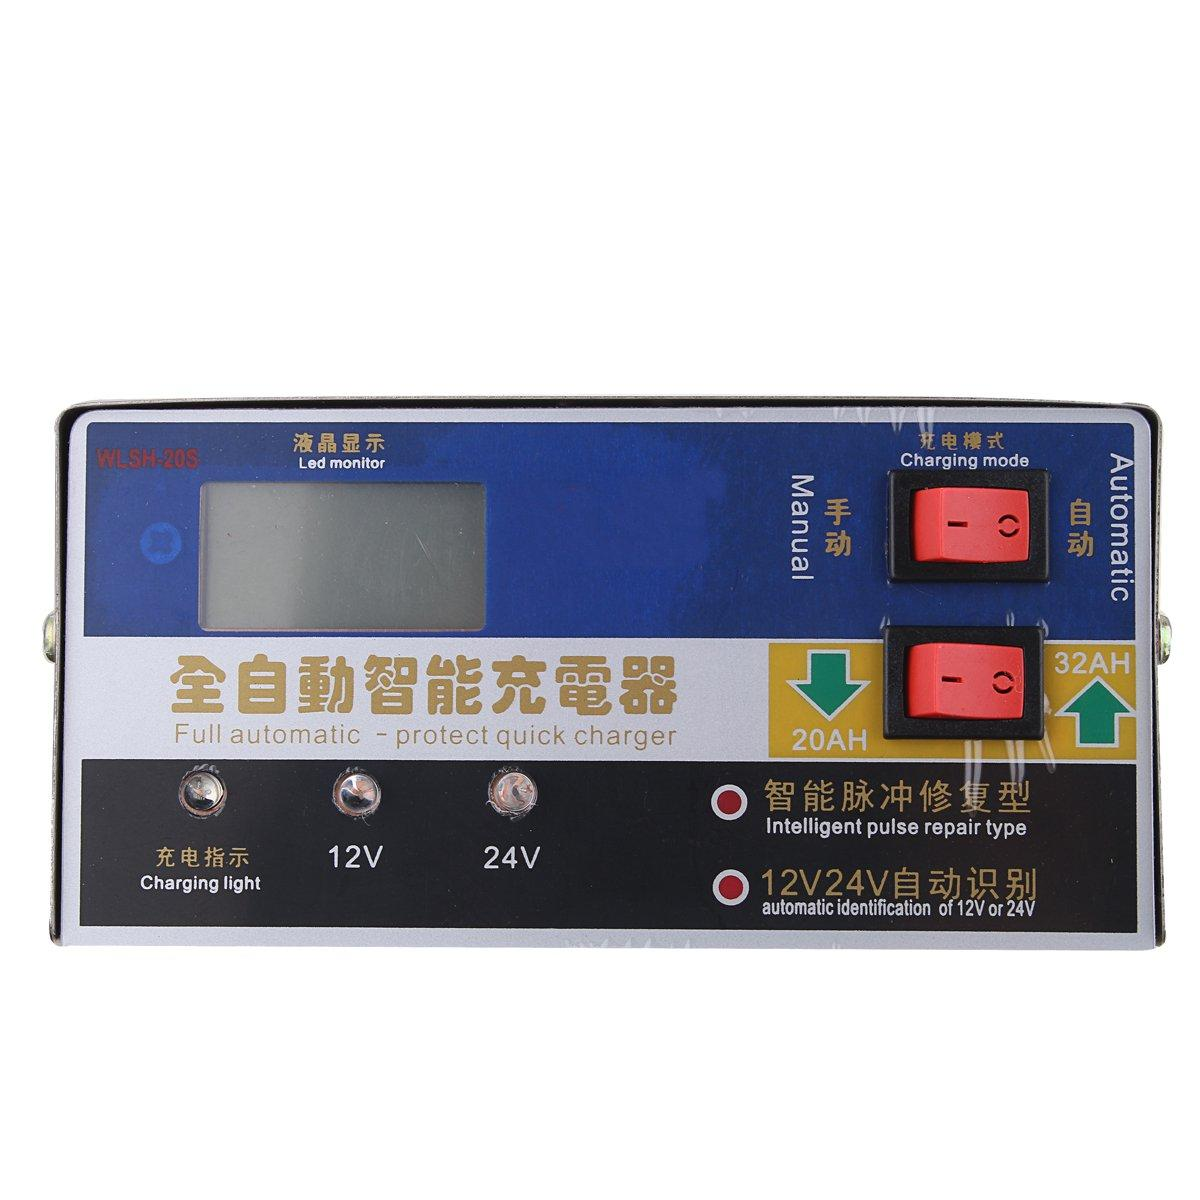 12V / 24V 400W 100AH ​​Full Automatic-Protect Snabb Laddare Smart Pulse Repair